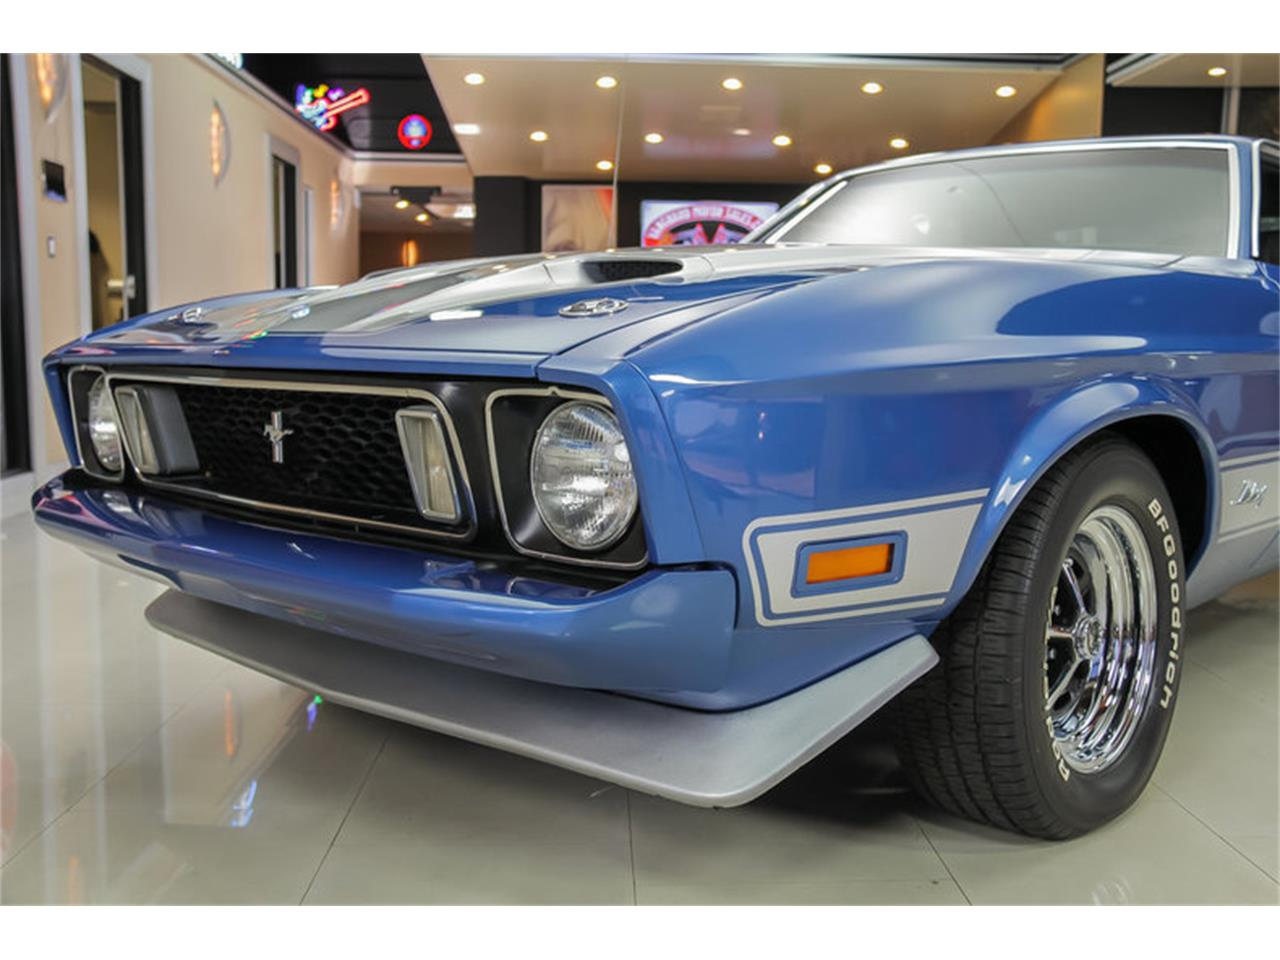 Large Picture of Classic '73 Ford Mustang Mach 1 Q Code located in Plymouth Michigan - $34,900.00 - JDX1